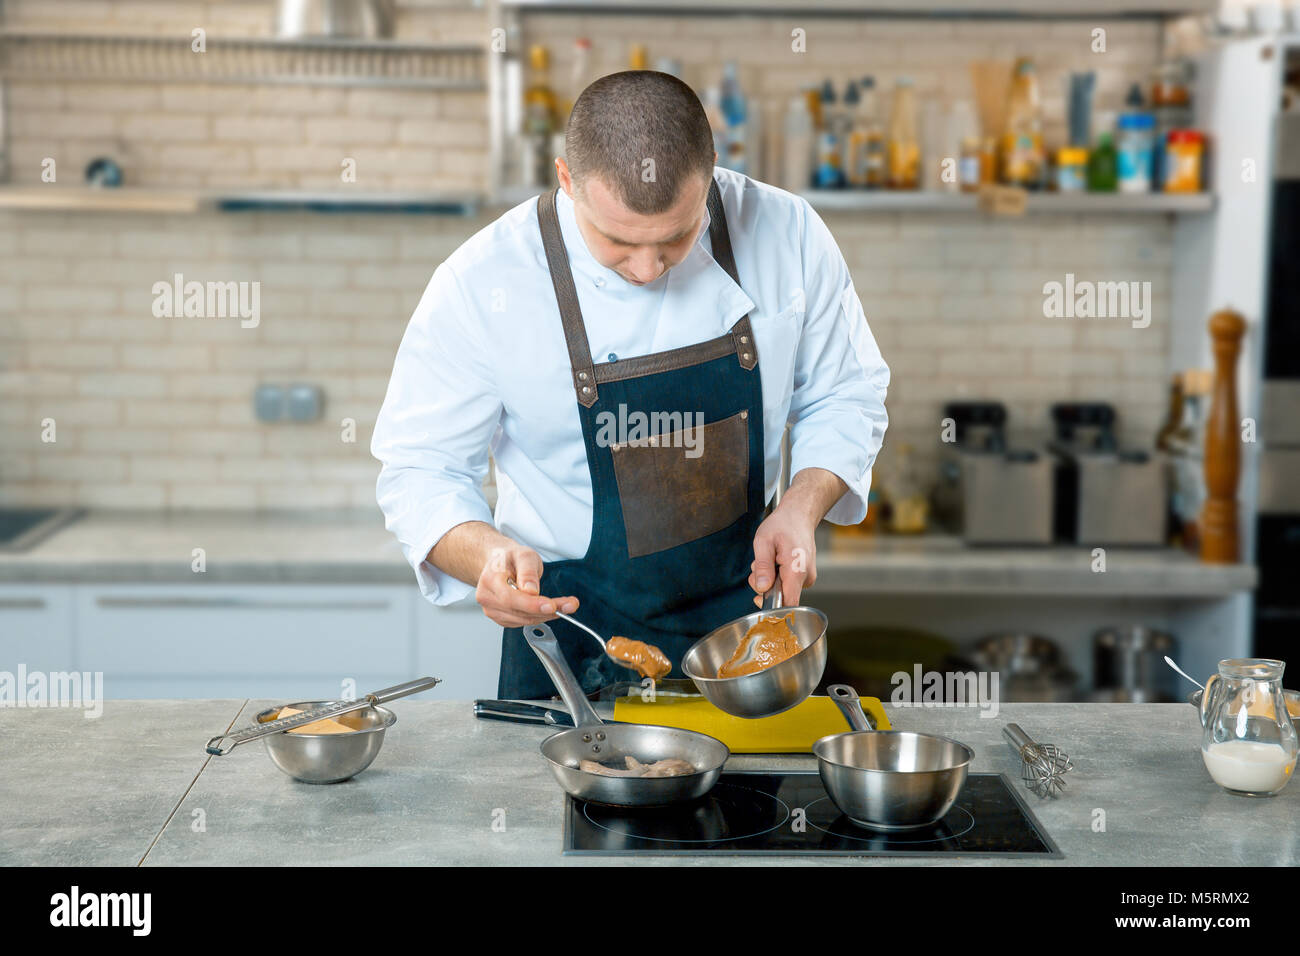 Chef cook pours sauce into a frying pan. Fast food dinner and lunch restaurant bar. Kitchen interior - Stock Image